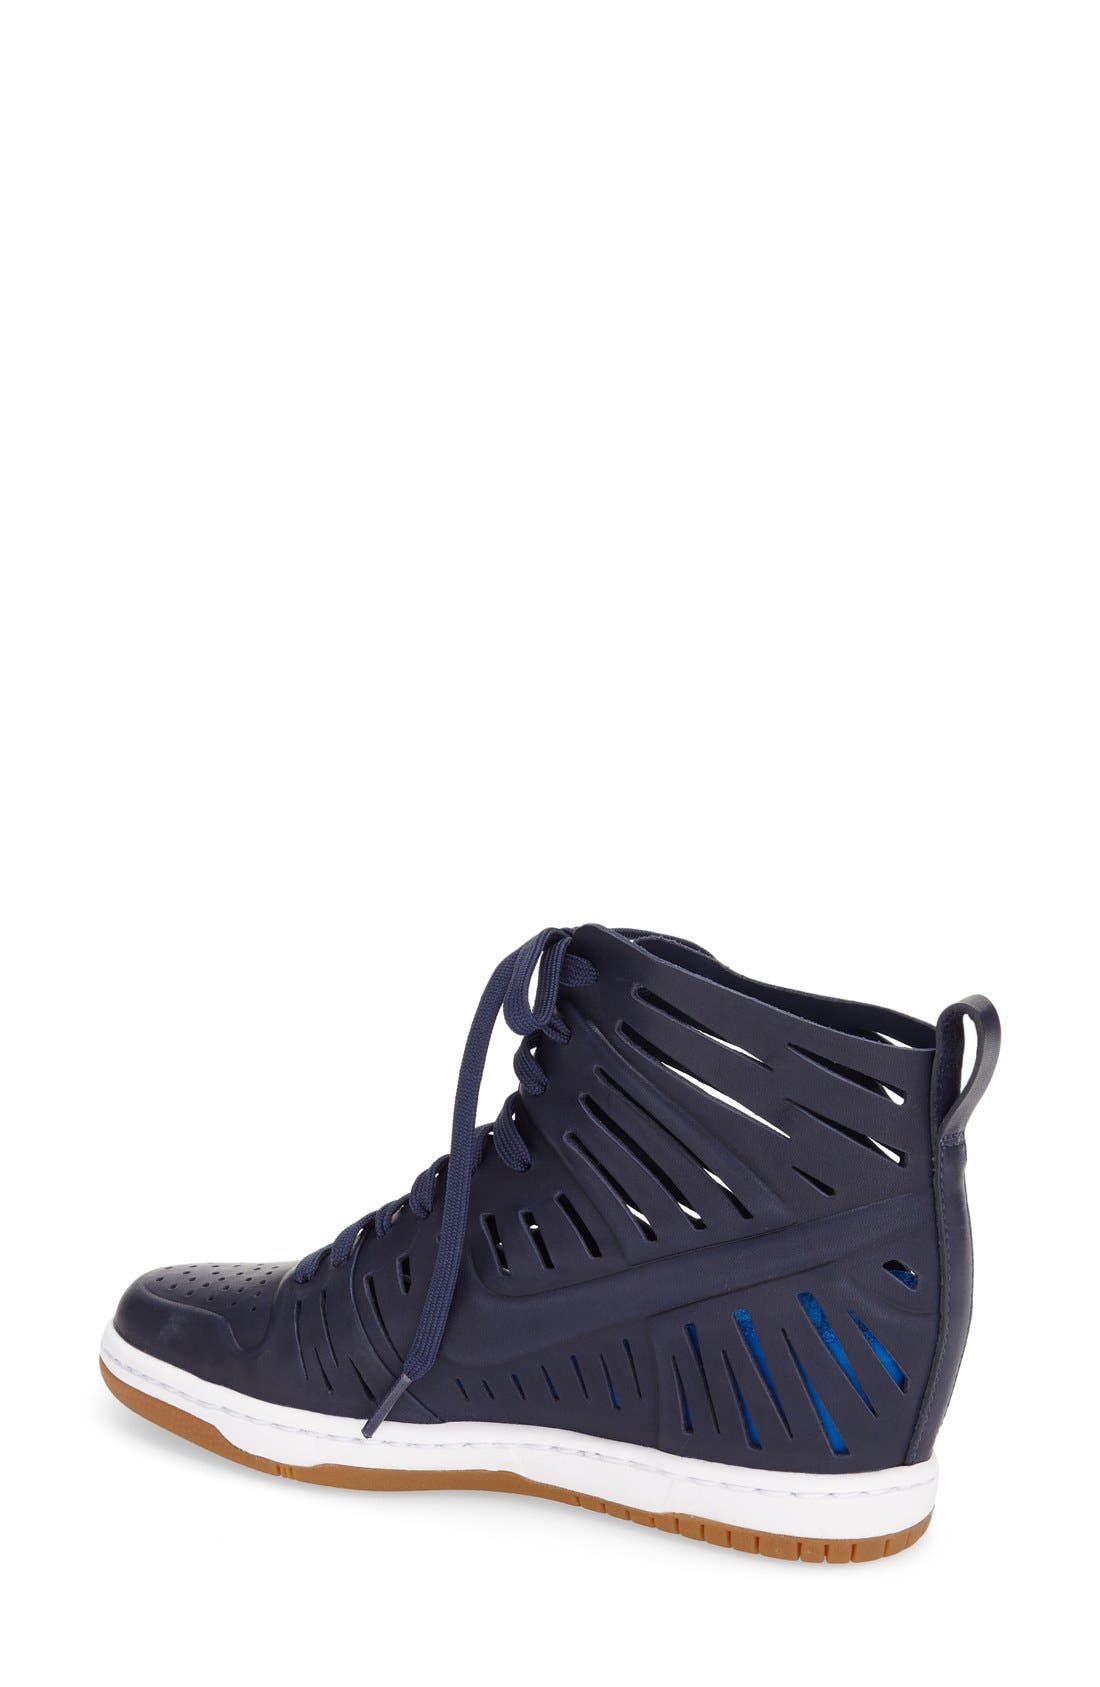 Alternate Image 2  - Nike 'Dunk Sky Hi Joli' Hidden Wedge Sneaker (Women)